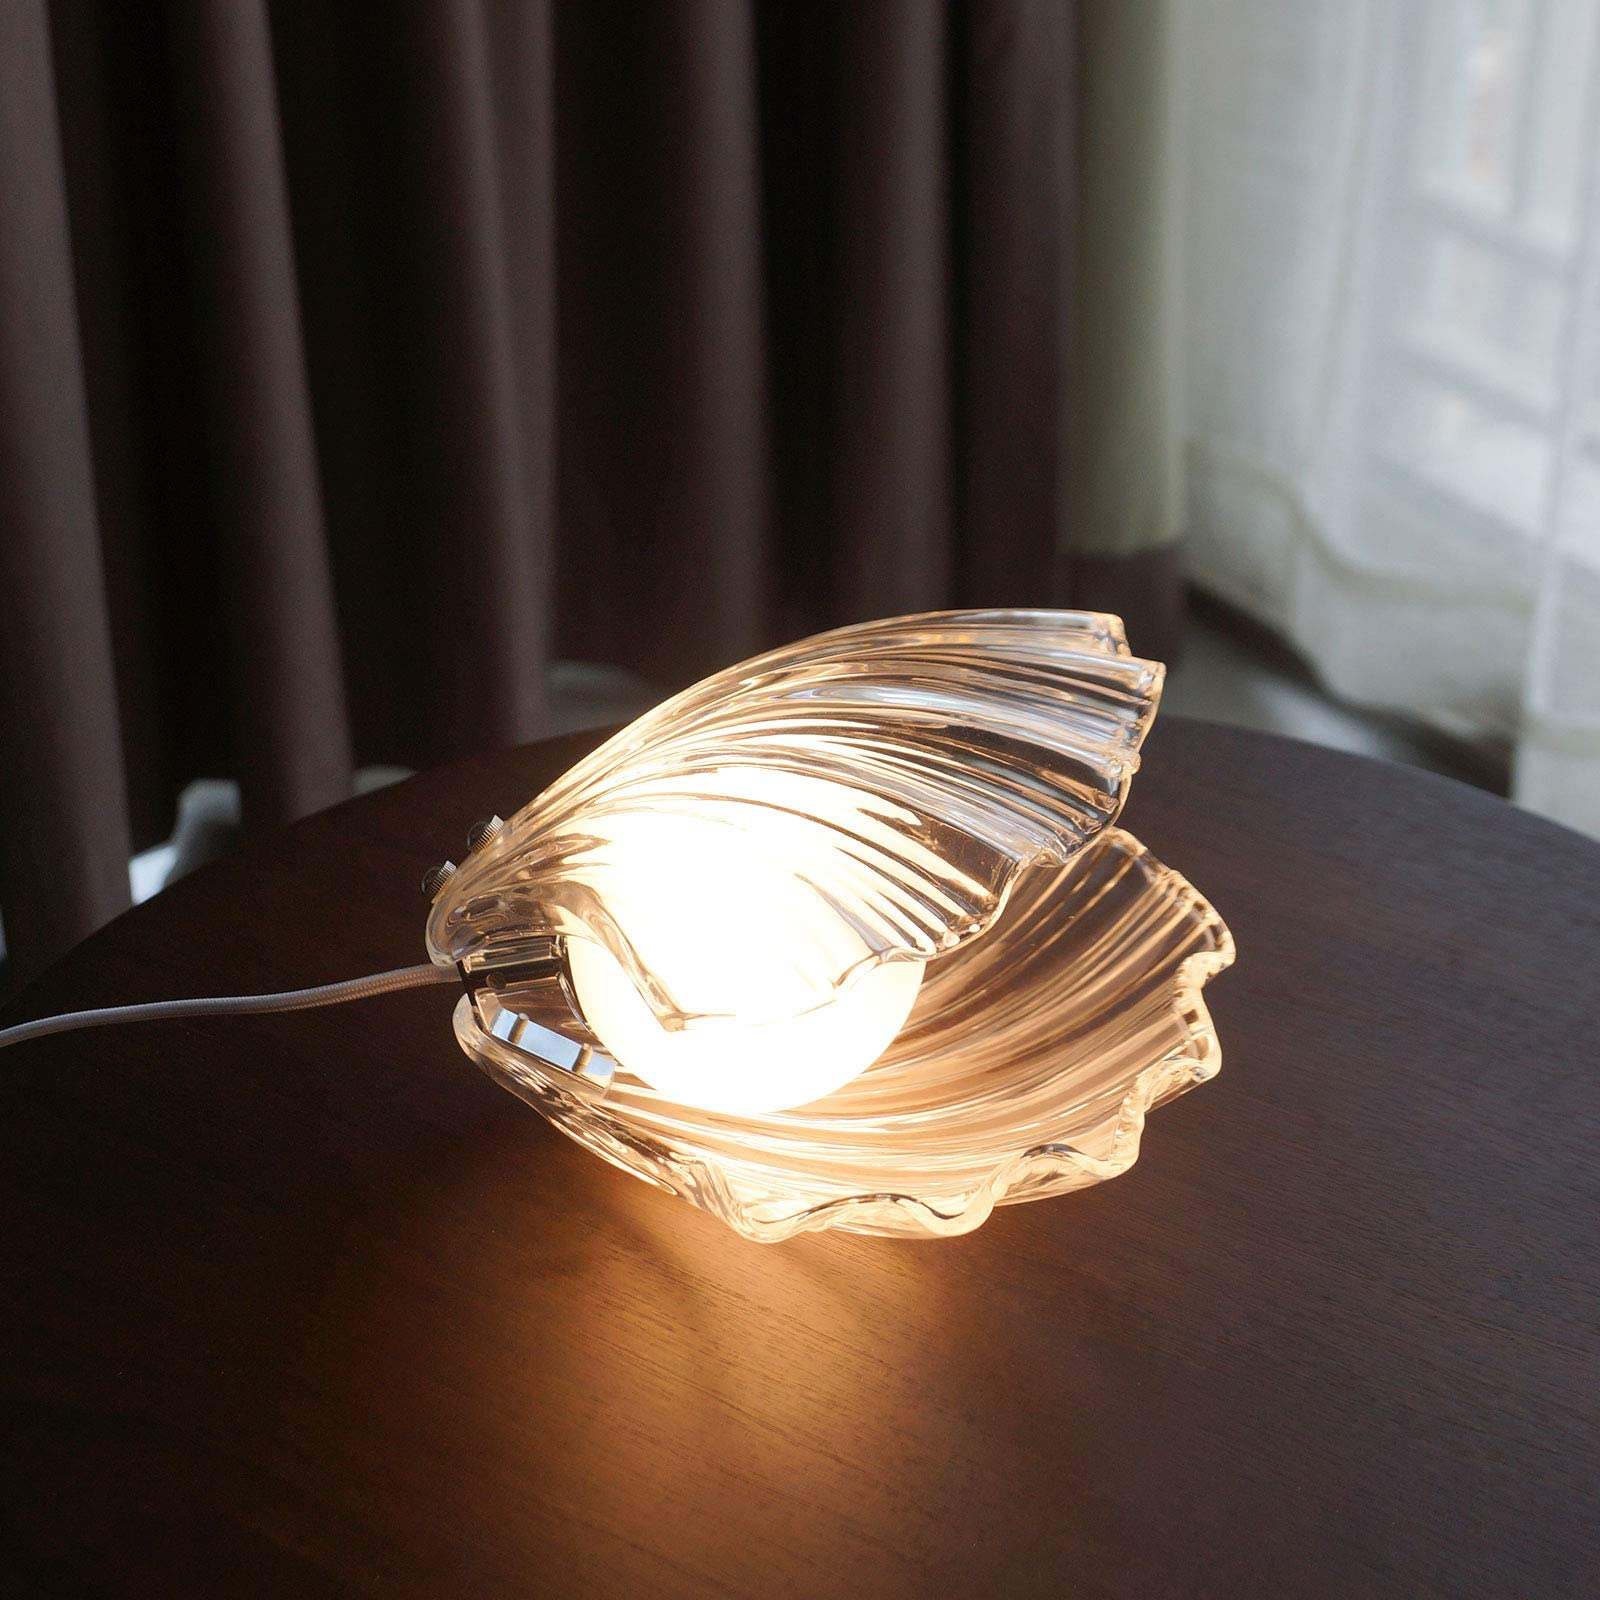 Deals on SAMGREEN LED Mood Light Shell Pearl Night Light Lamp